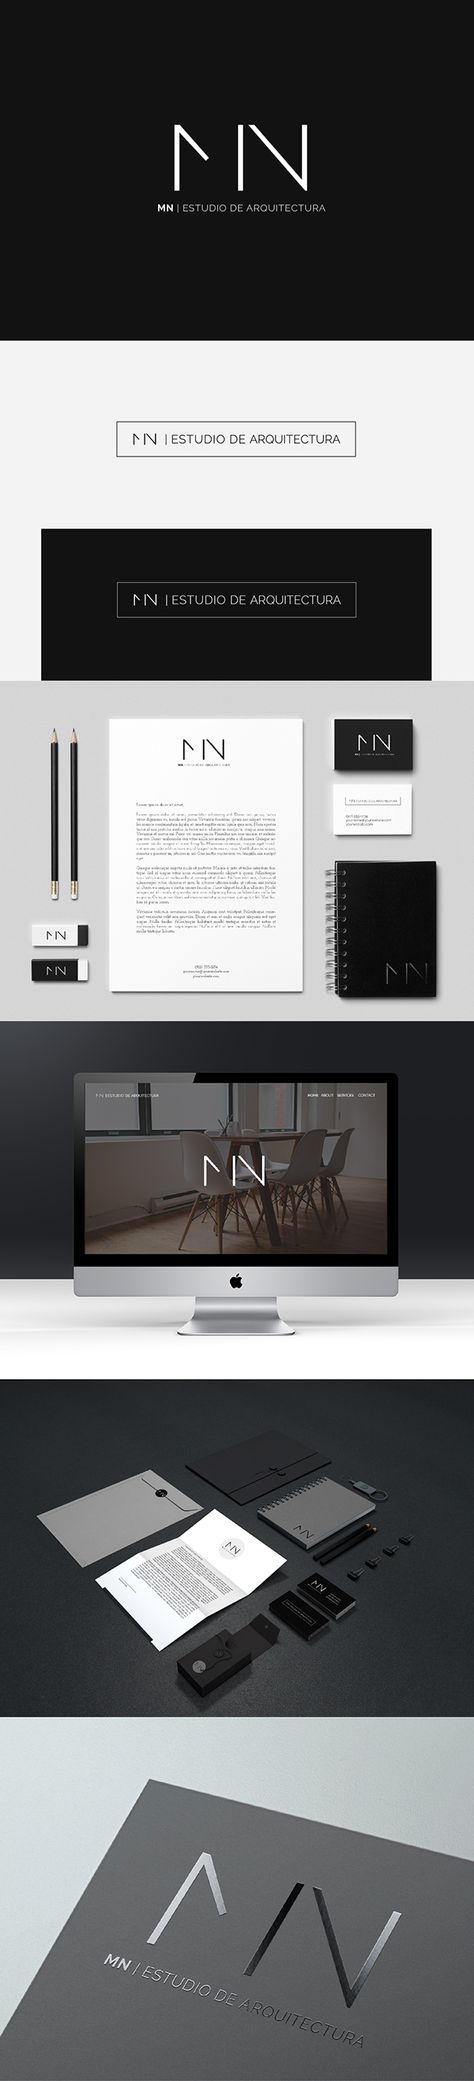 Square Business Card Mock-Up. Download here: http://graphicriver ...